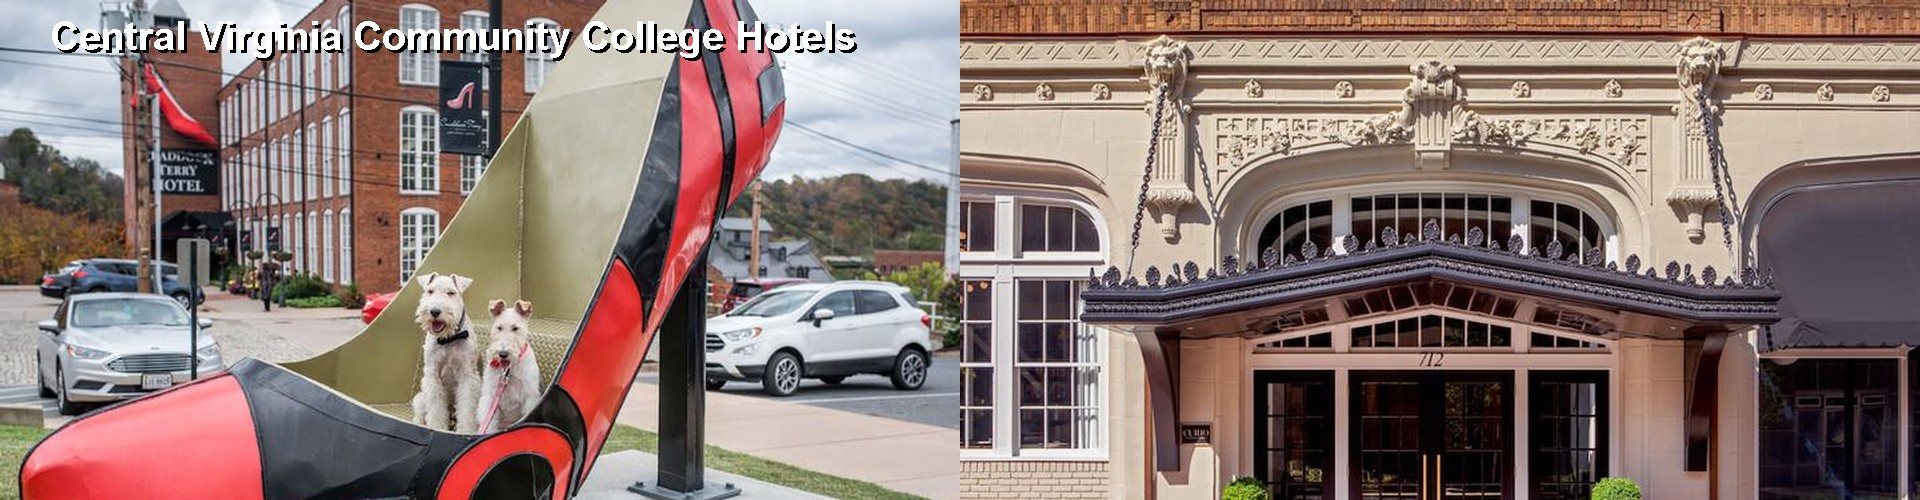 5 Best Hotels near Central Virginia Community College